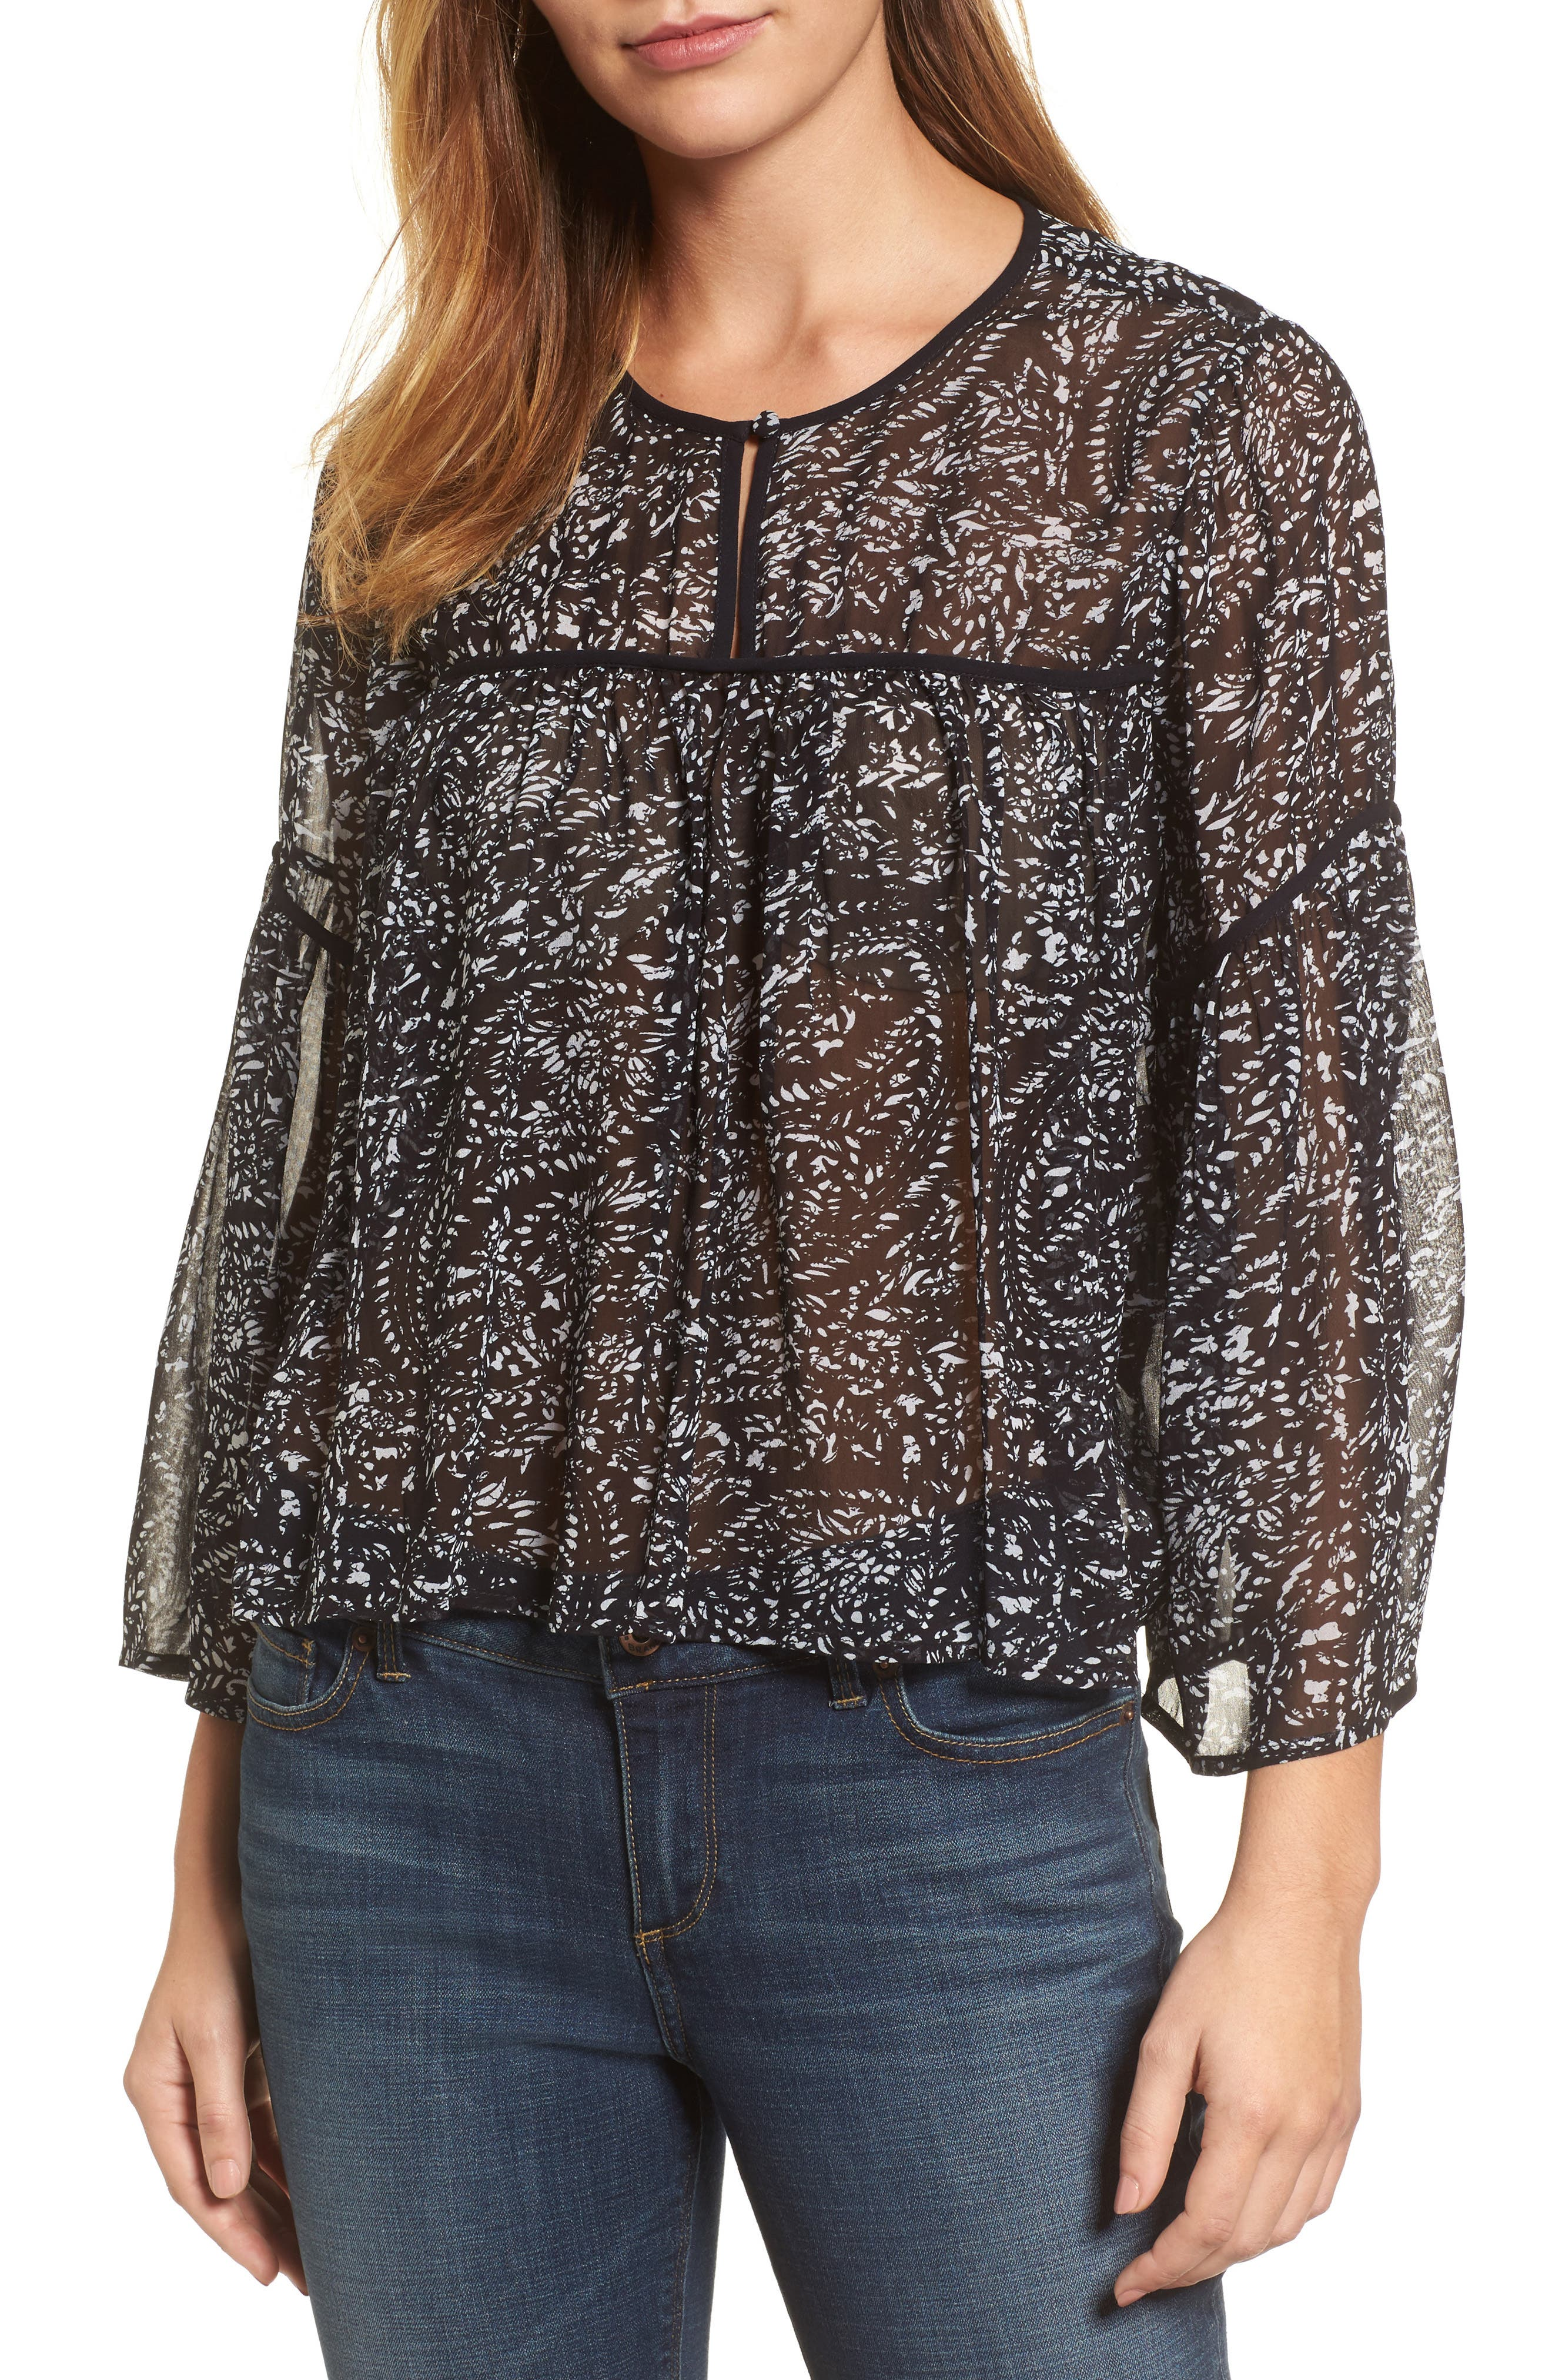 Alternate Image 1 Selected - Lucky Brand Paisley Print Bell Sleeve Top